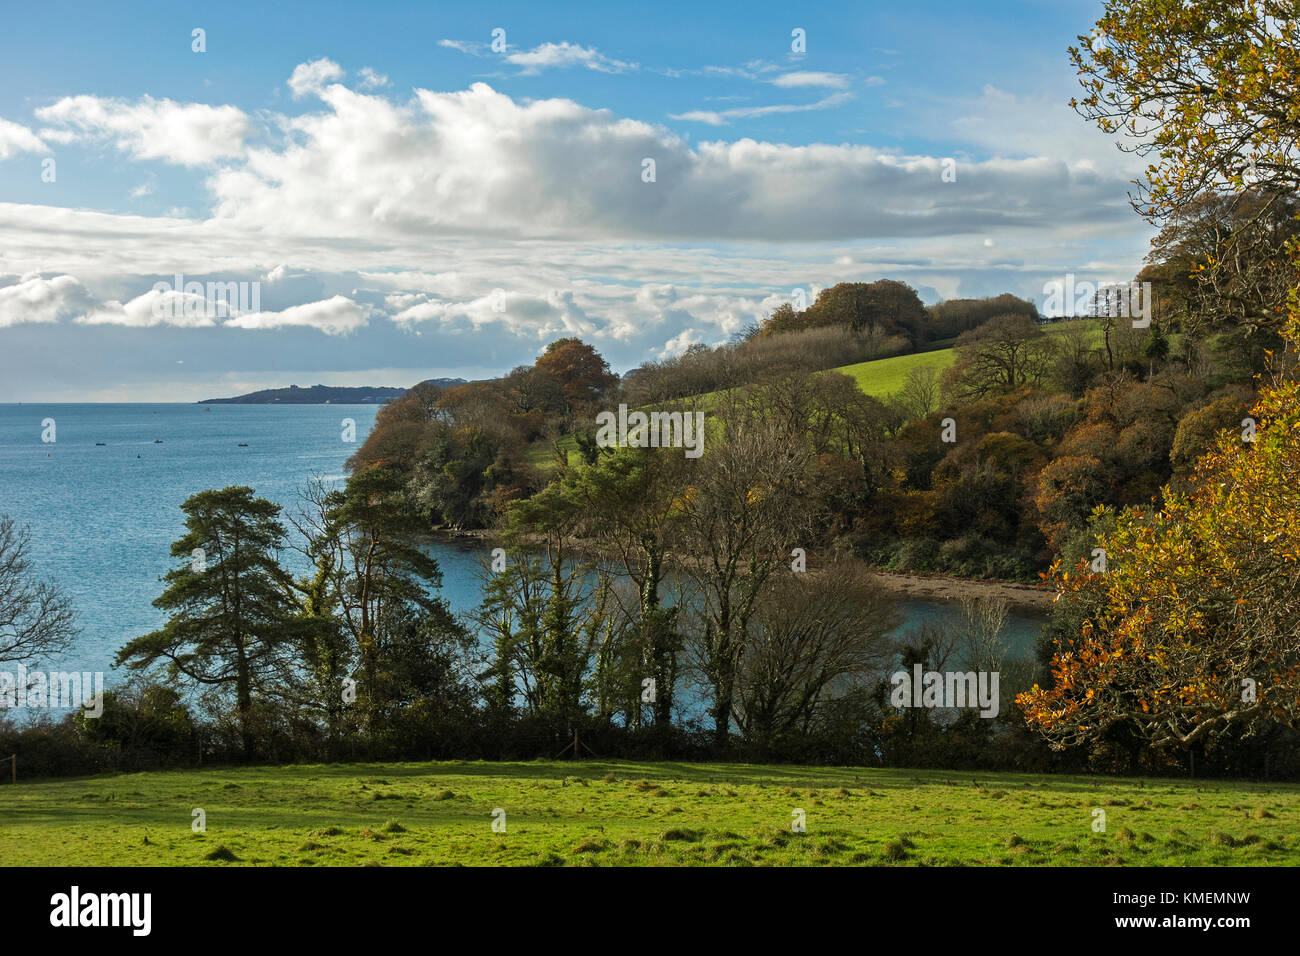 view of carrick roads and river fal near truro in cornwall, england, britain, uk. - Stock Image